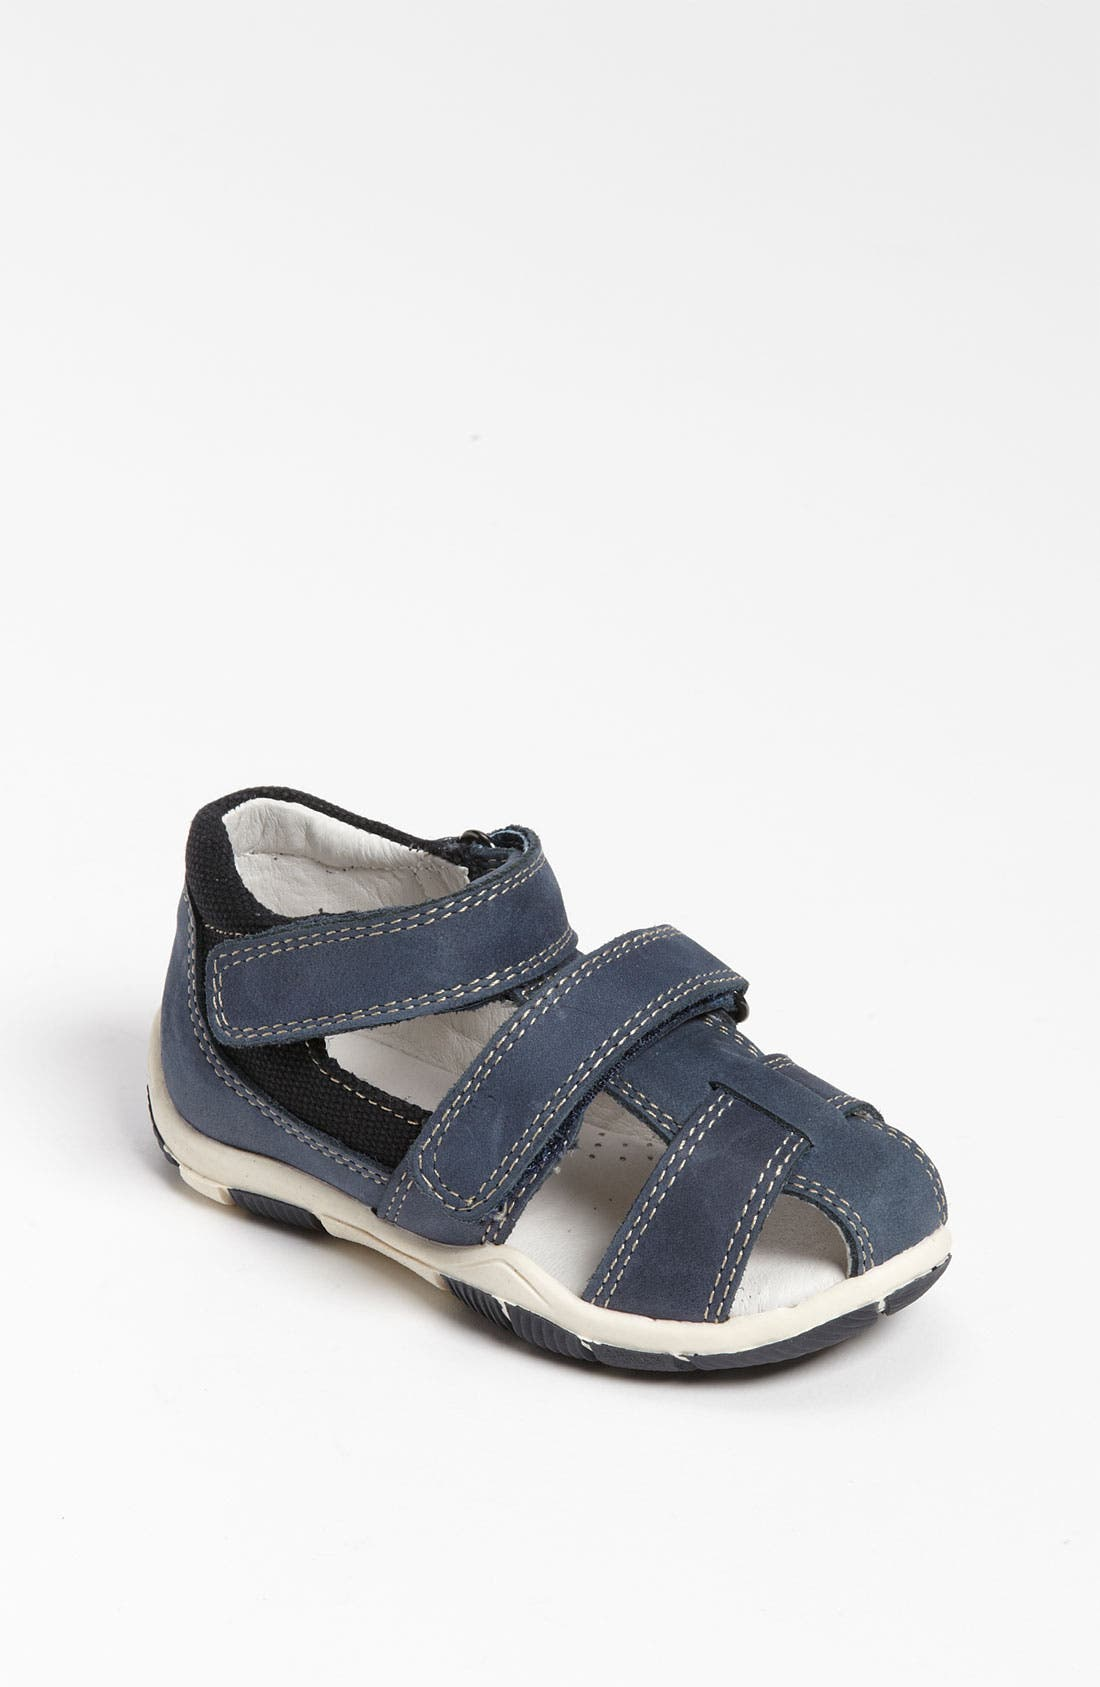 Alternate Image 1 Selected - Cole Haan 'Air Luca' Fisherman Sandal (Walker & Toddler)